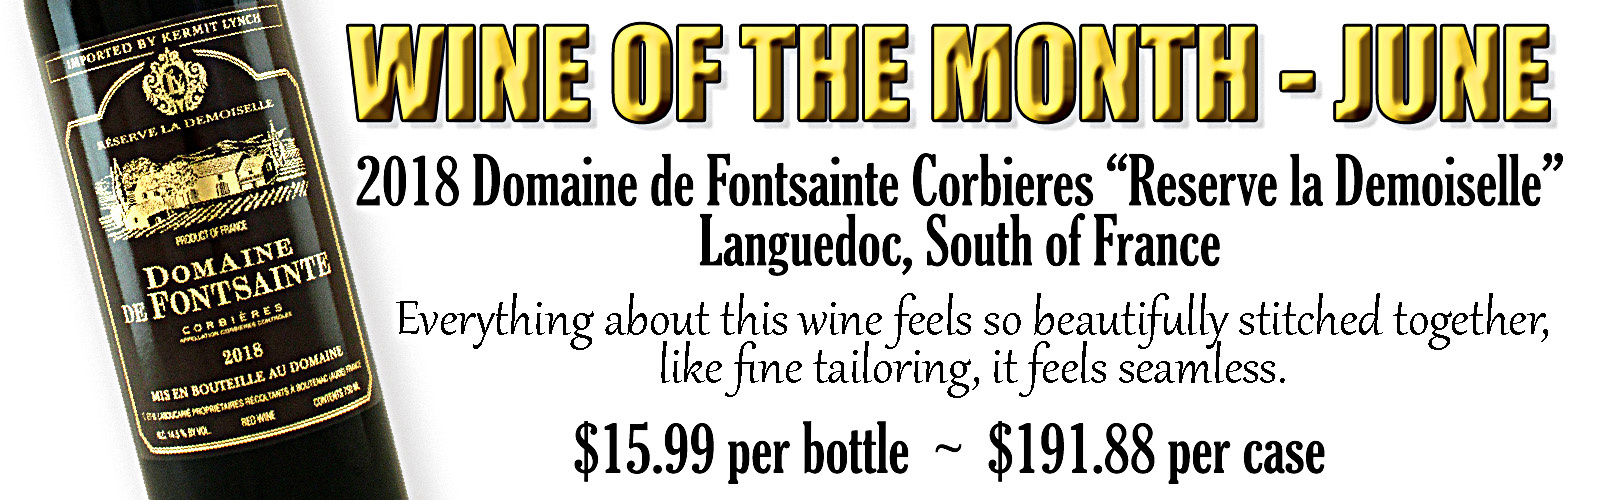 WINE OF THE MONTH - JUNE